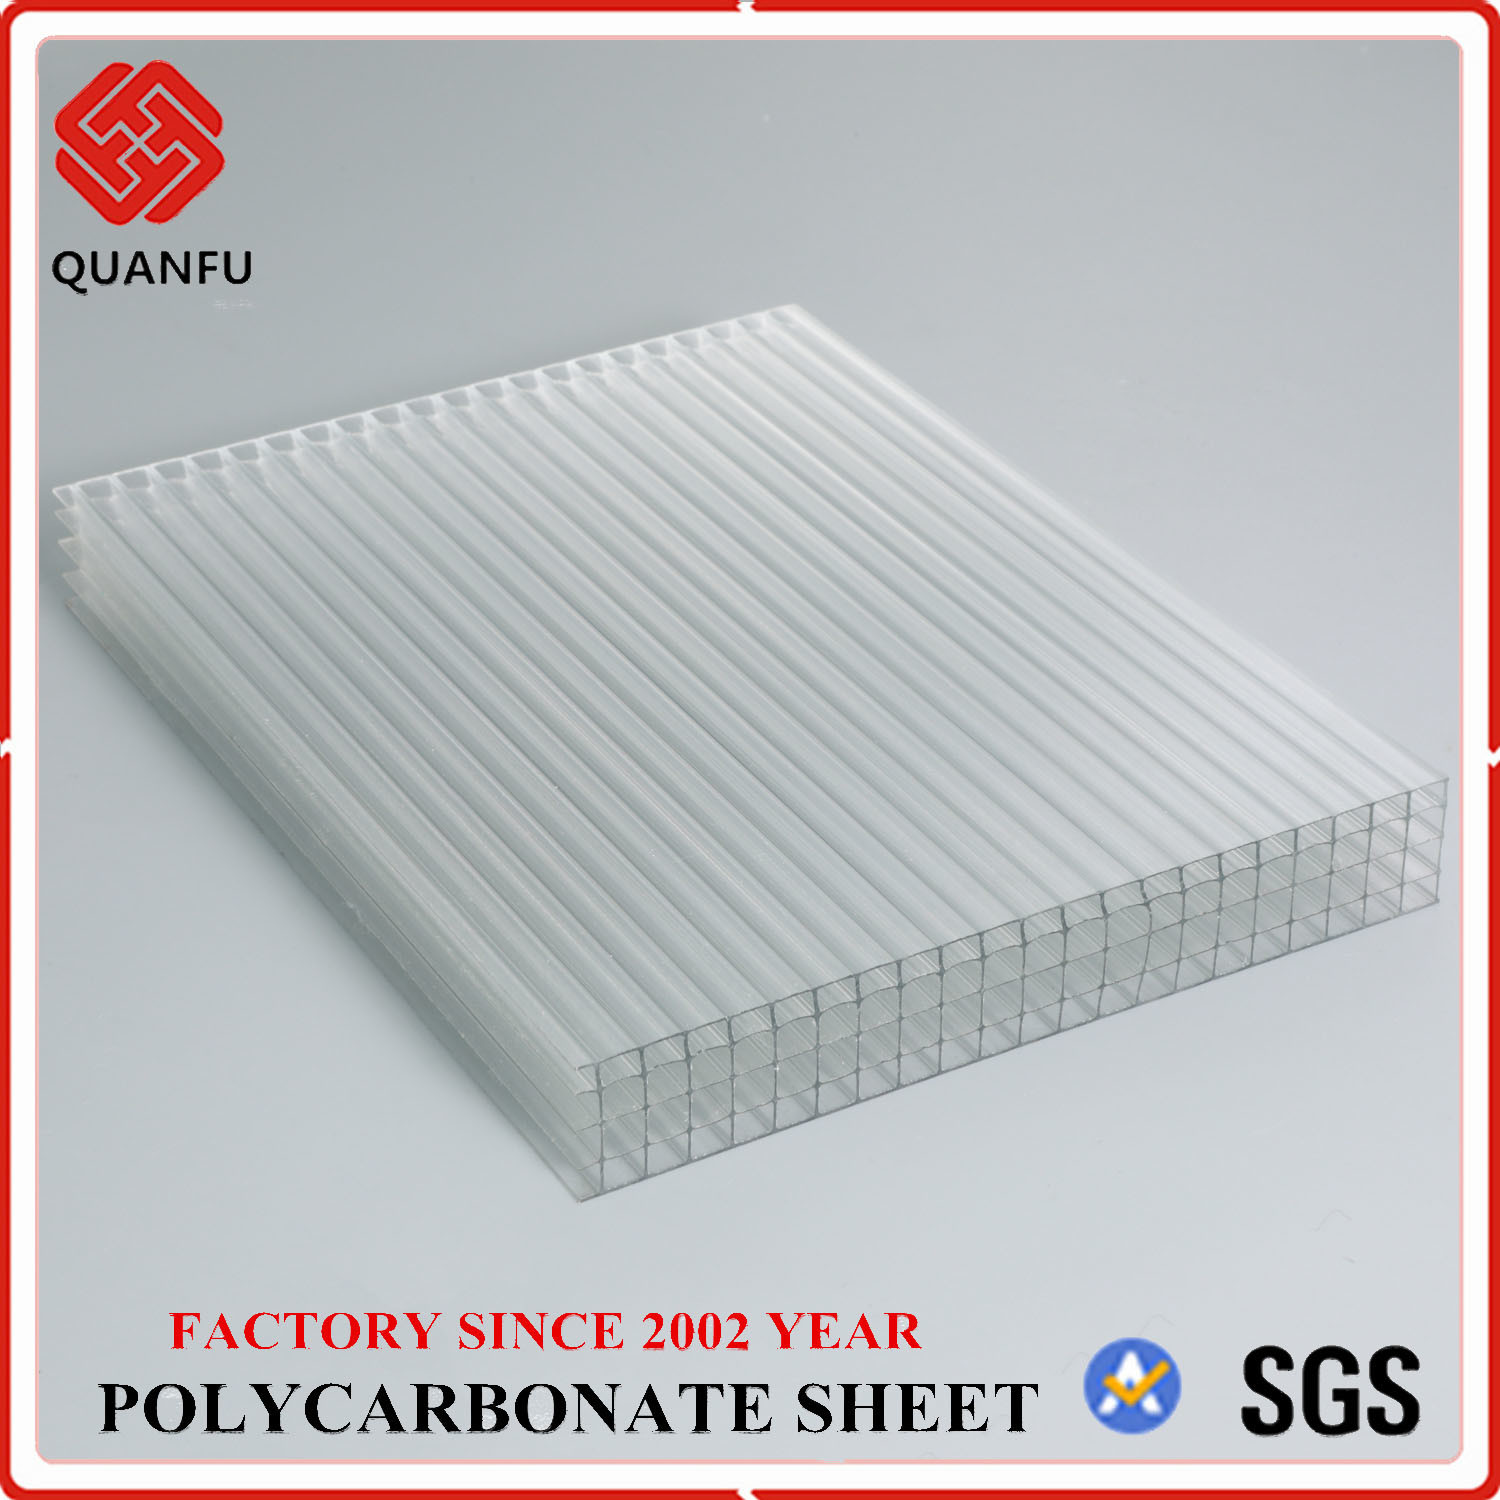 China Honeycomb Pool, Honeycomb Pool Manufacturers, Suppliers, Price |  Made-in-China com